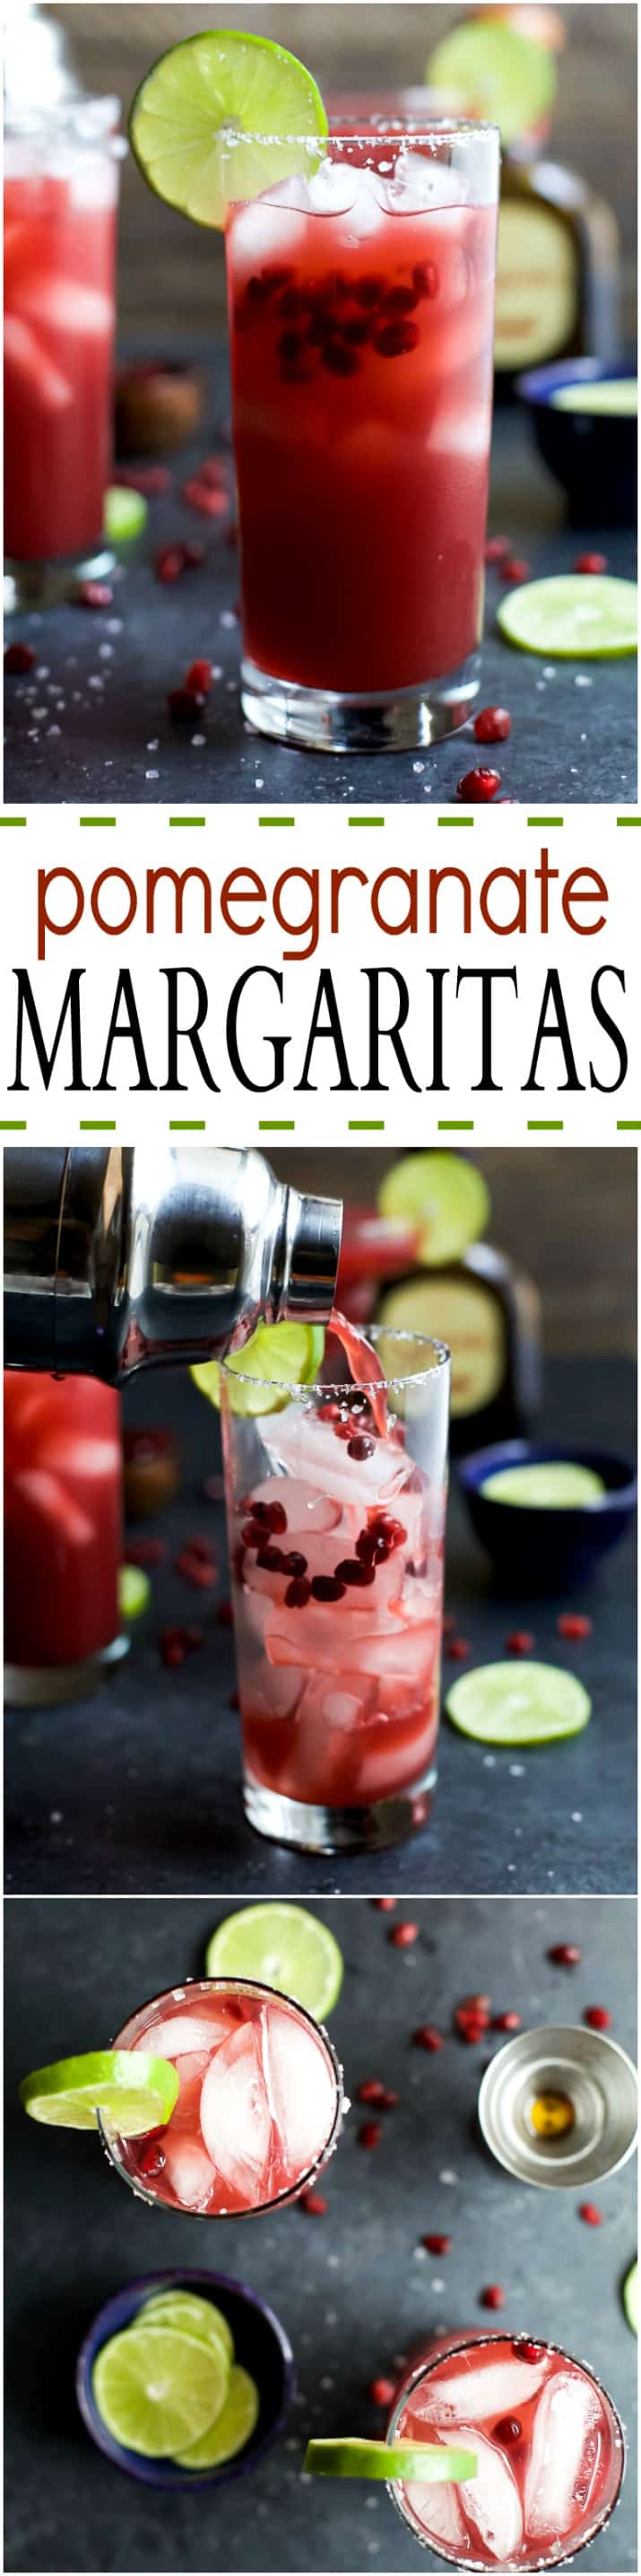 POMEGRANATE MARGARITAS an easy cocktail recipe you can rock all year round! Made with fresh ingredients. Cheers to the BEST Margarita Recipe ever!